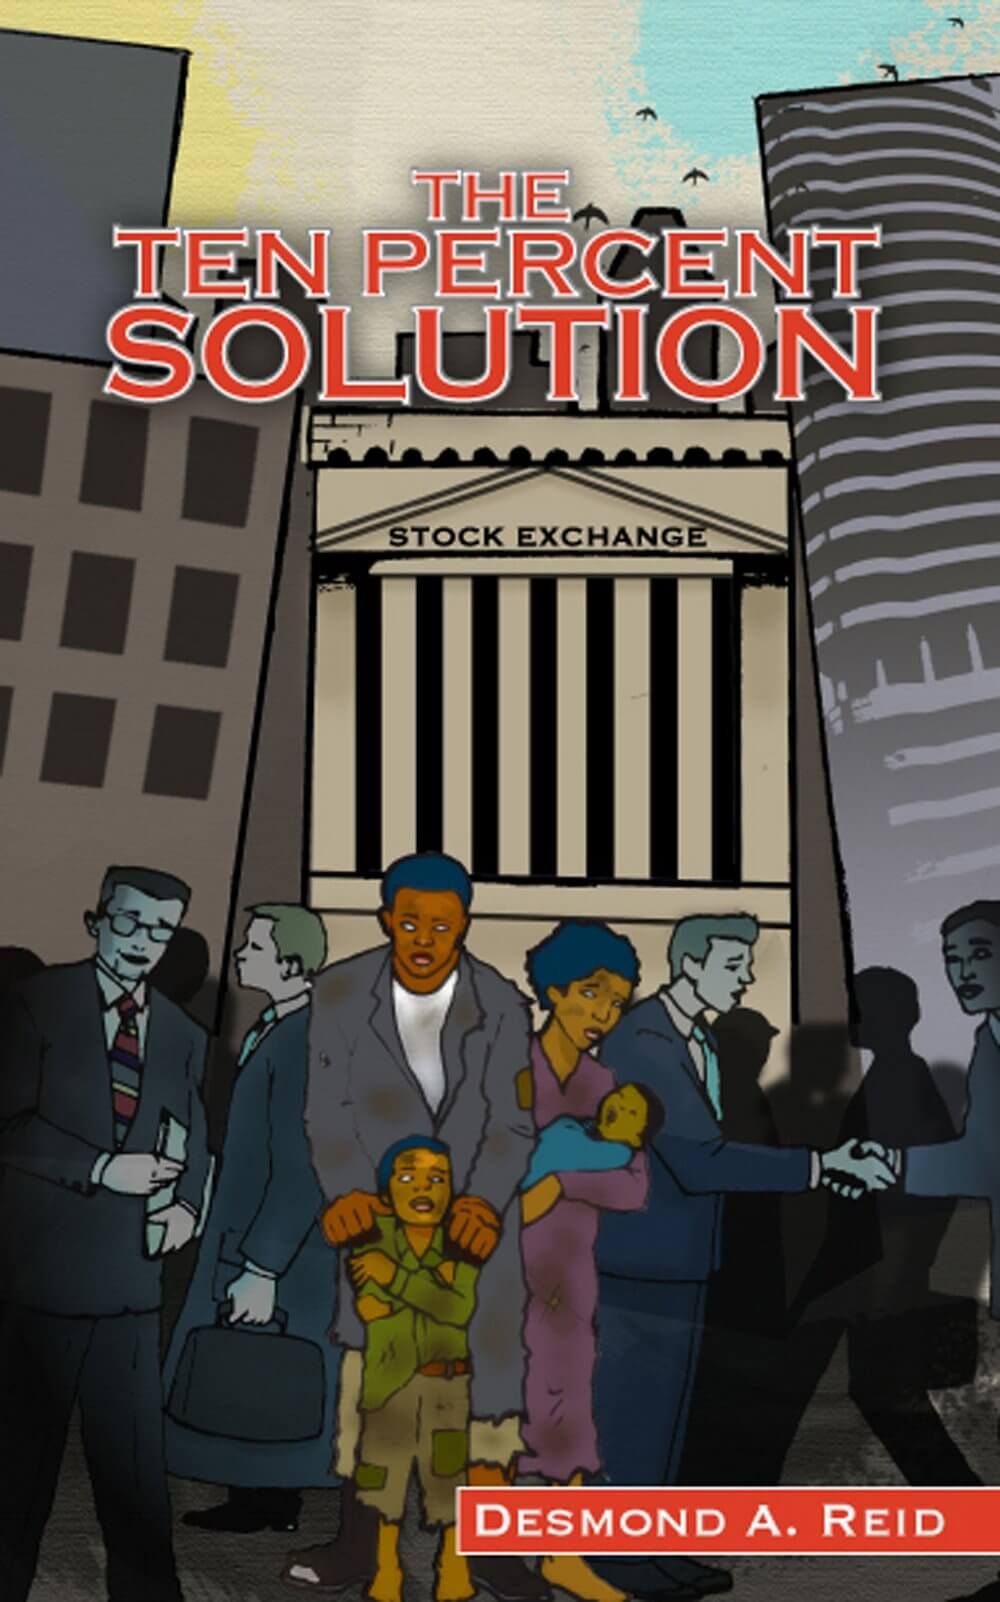 Book Cover The Ten Percent Solution: The Emancipation and Development of the African American Community by Desmond A. Reid